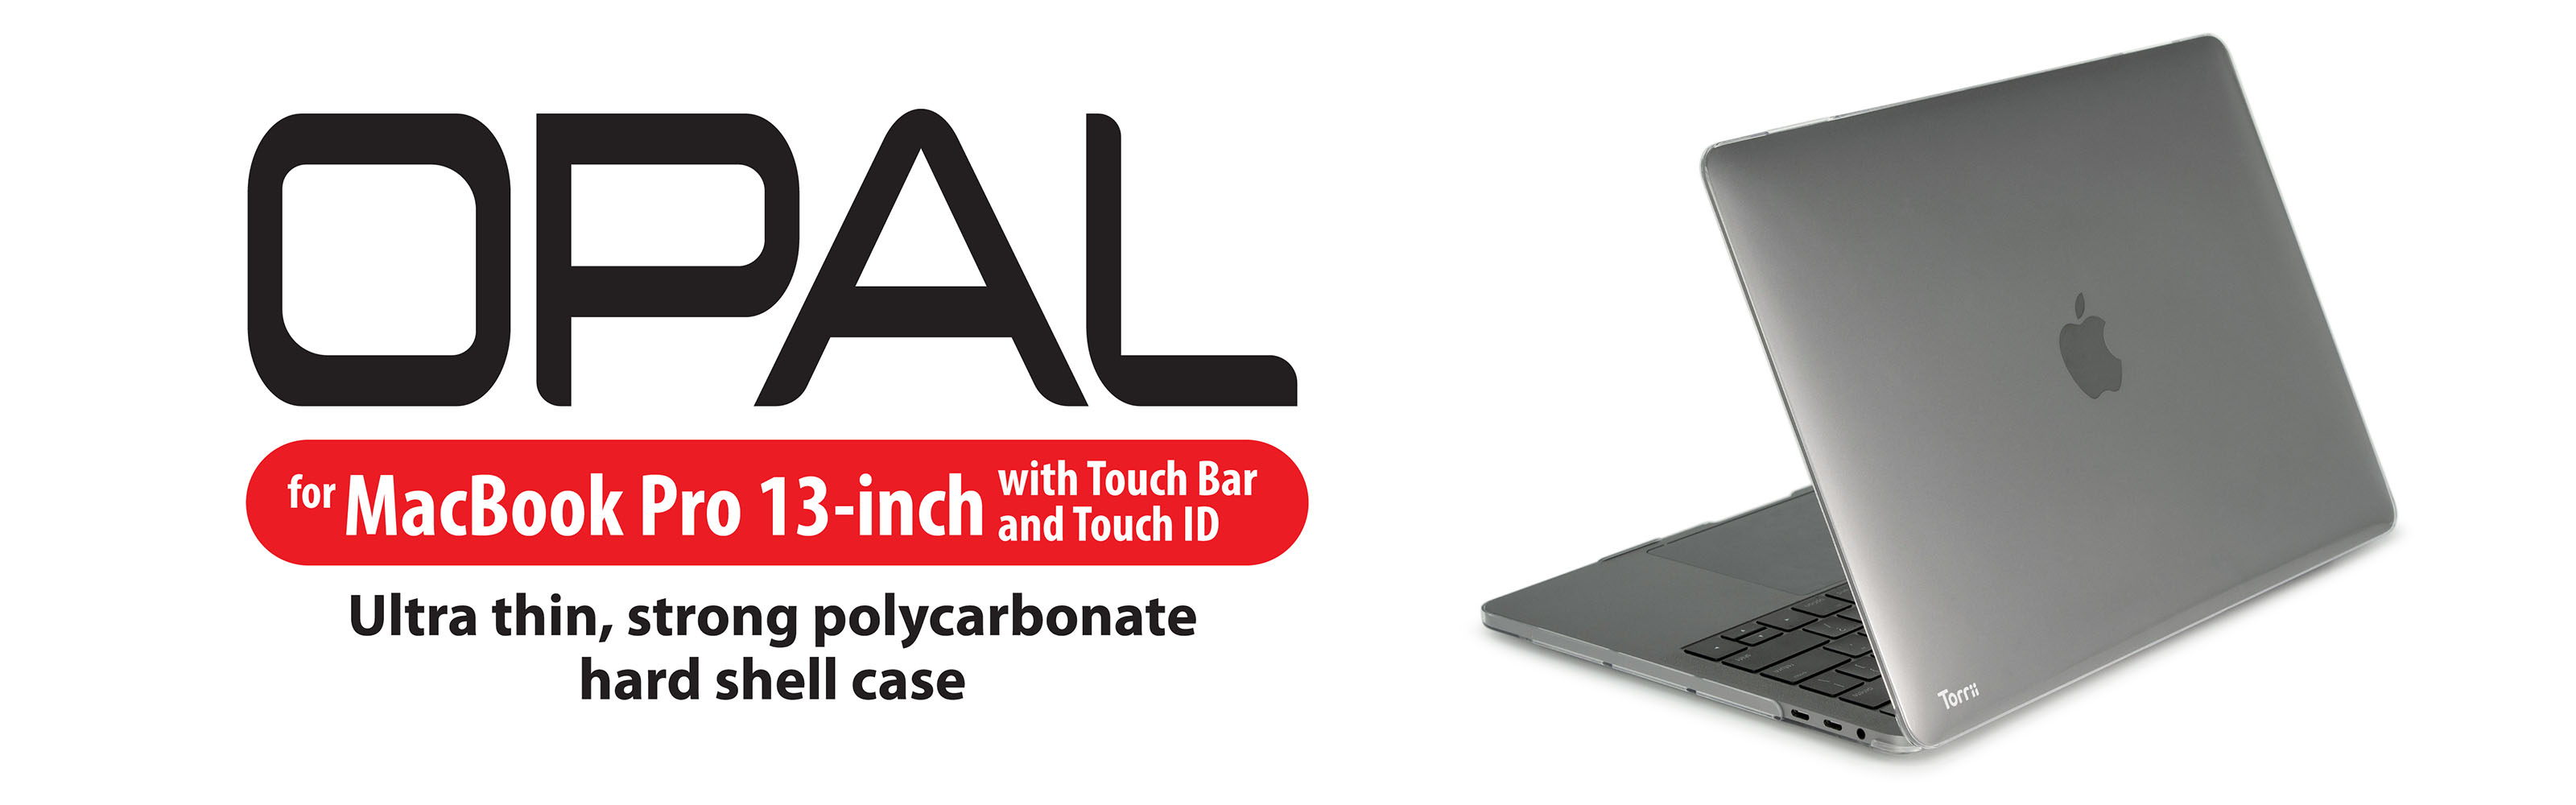 Torrii introduces OPAL for MacBook Pro 13-inch